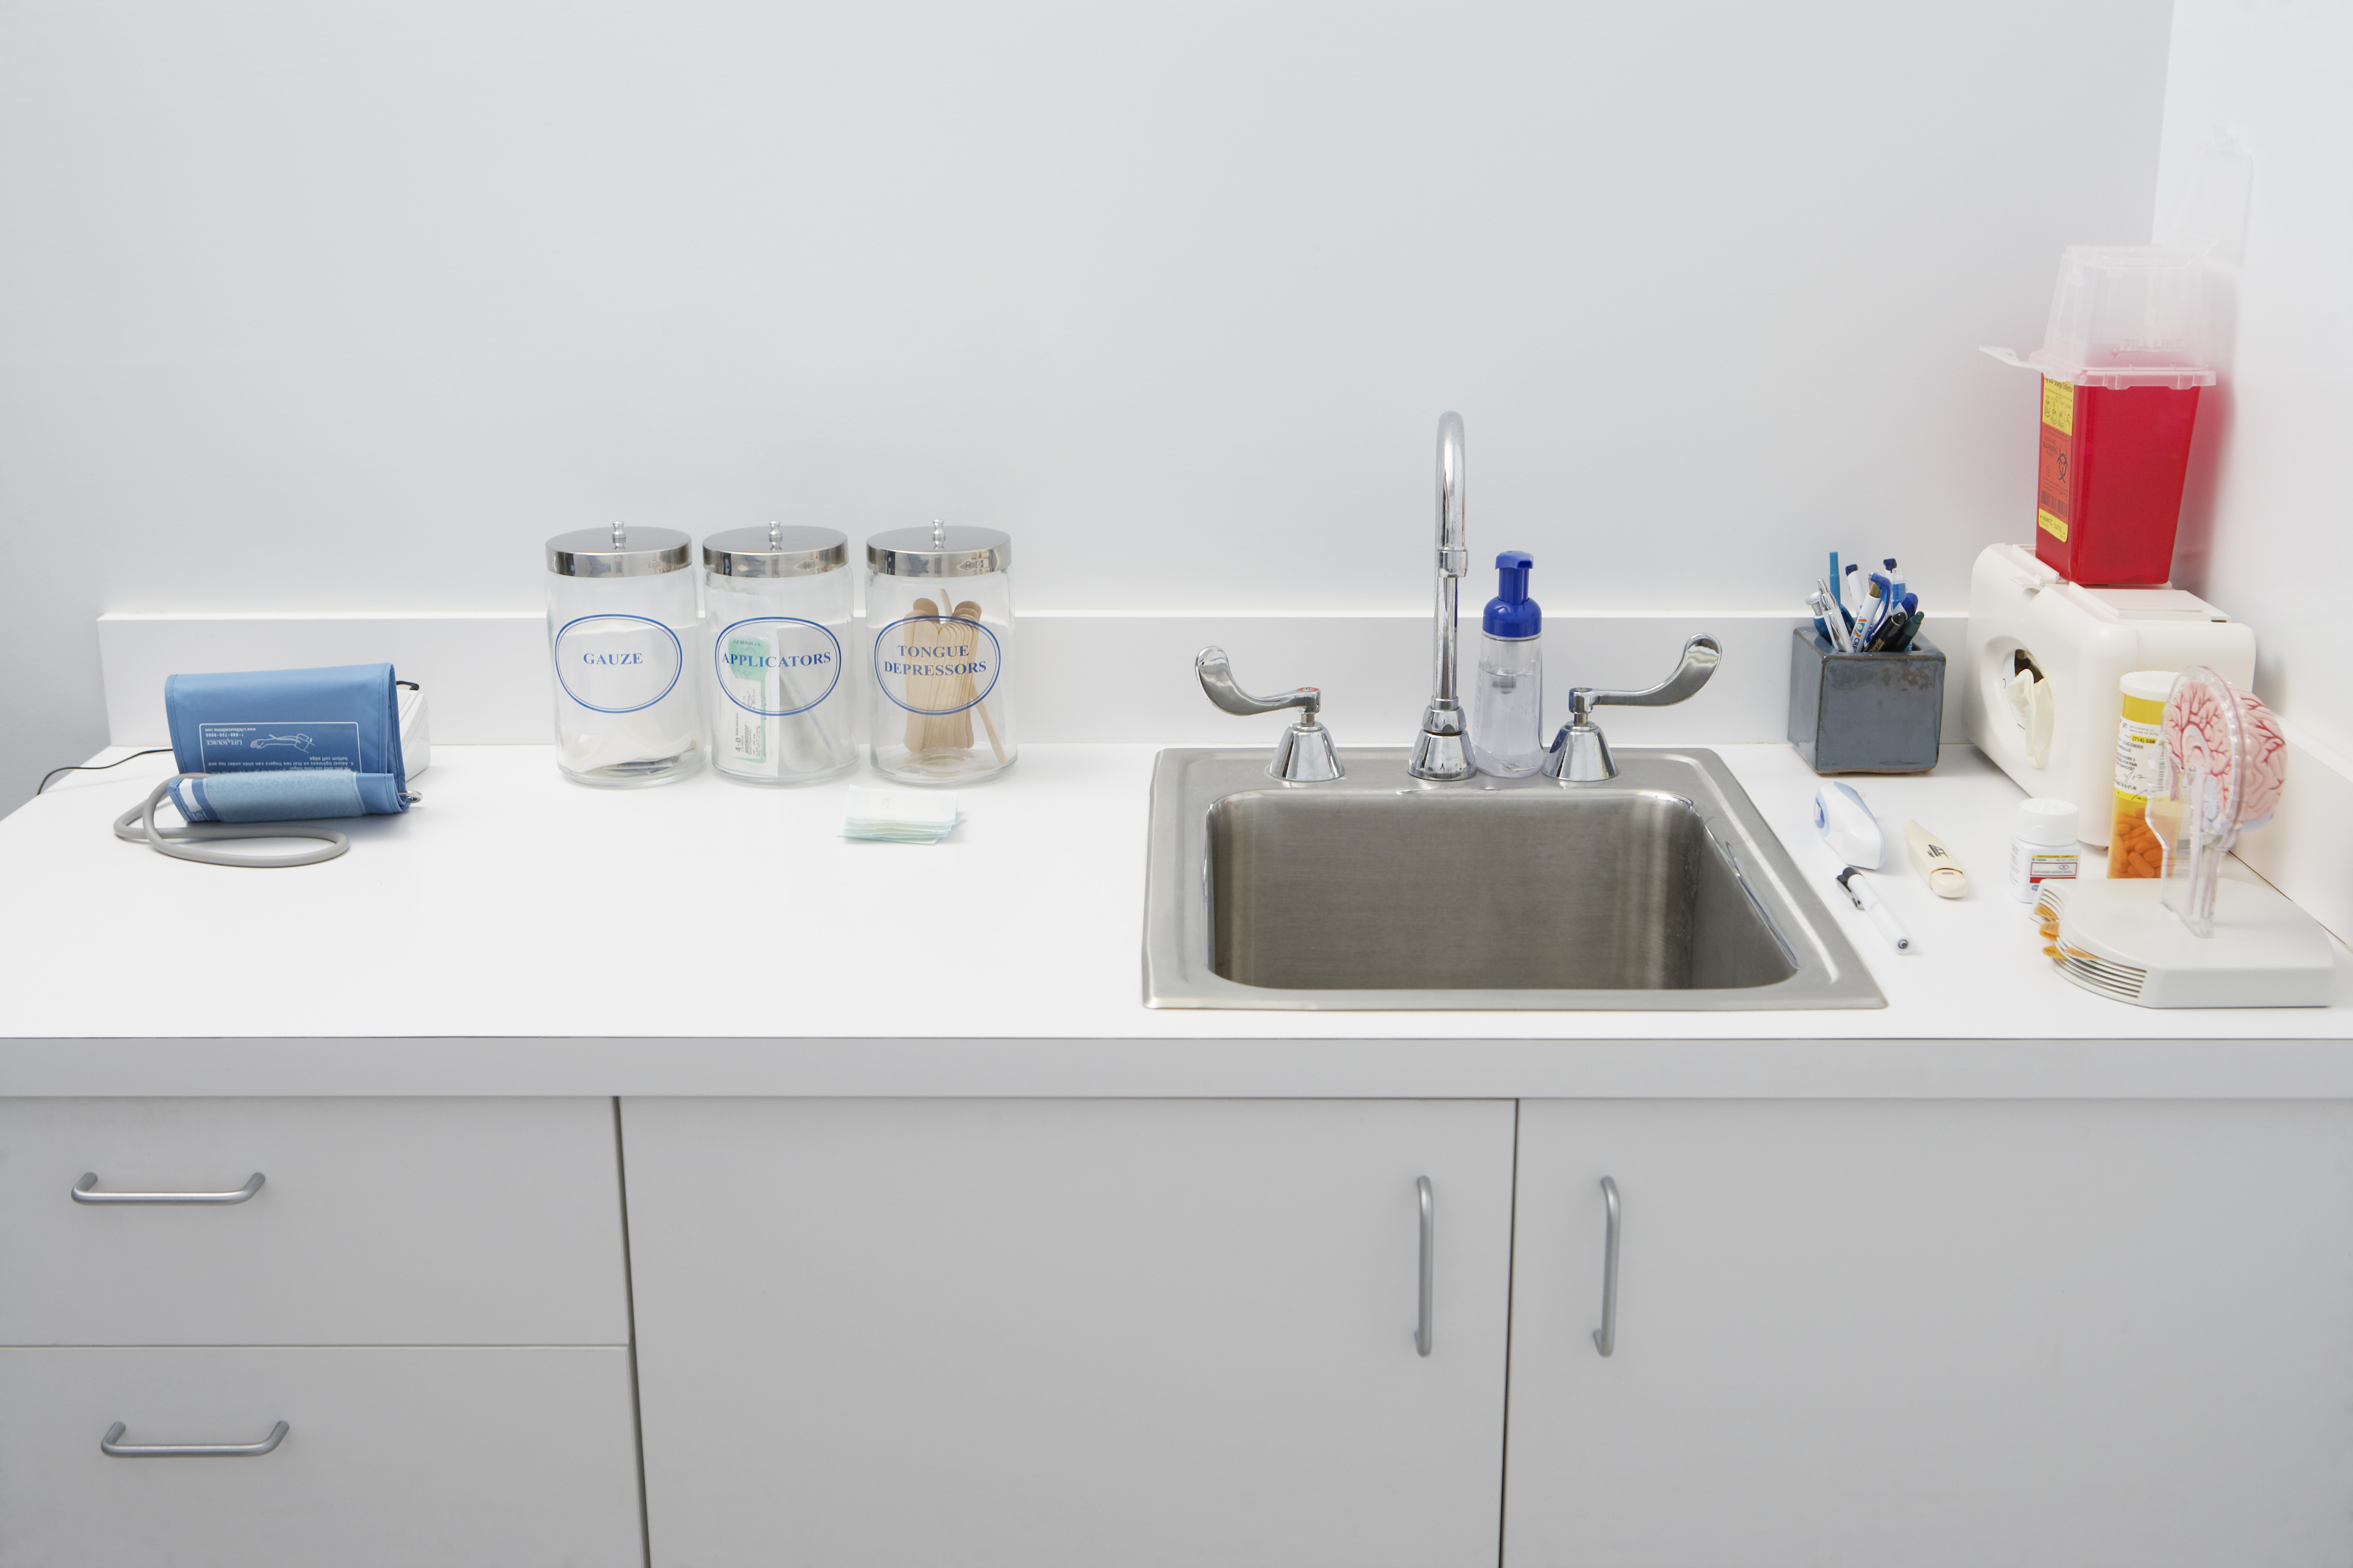 What Are Laboratory Cabinets And Countertops Made Of